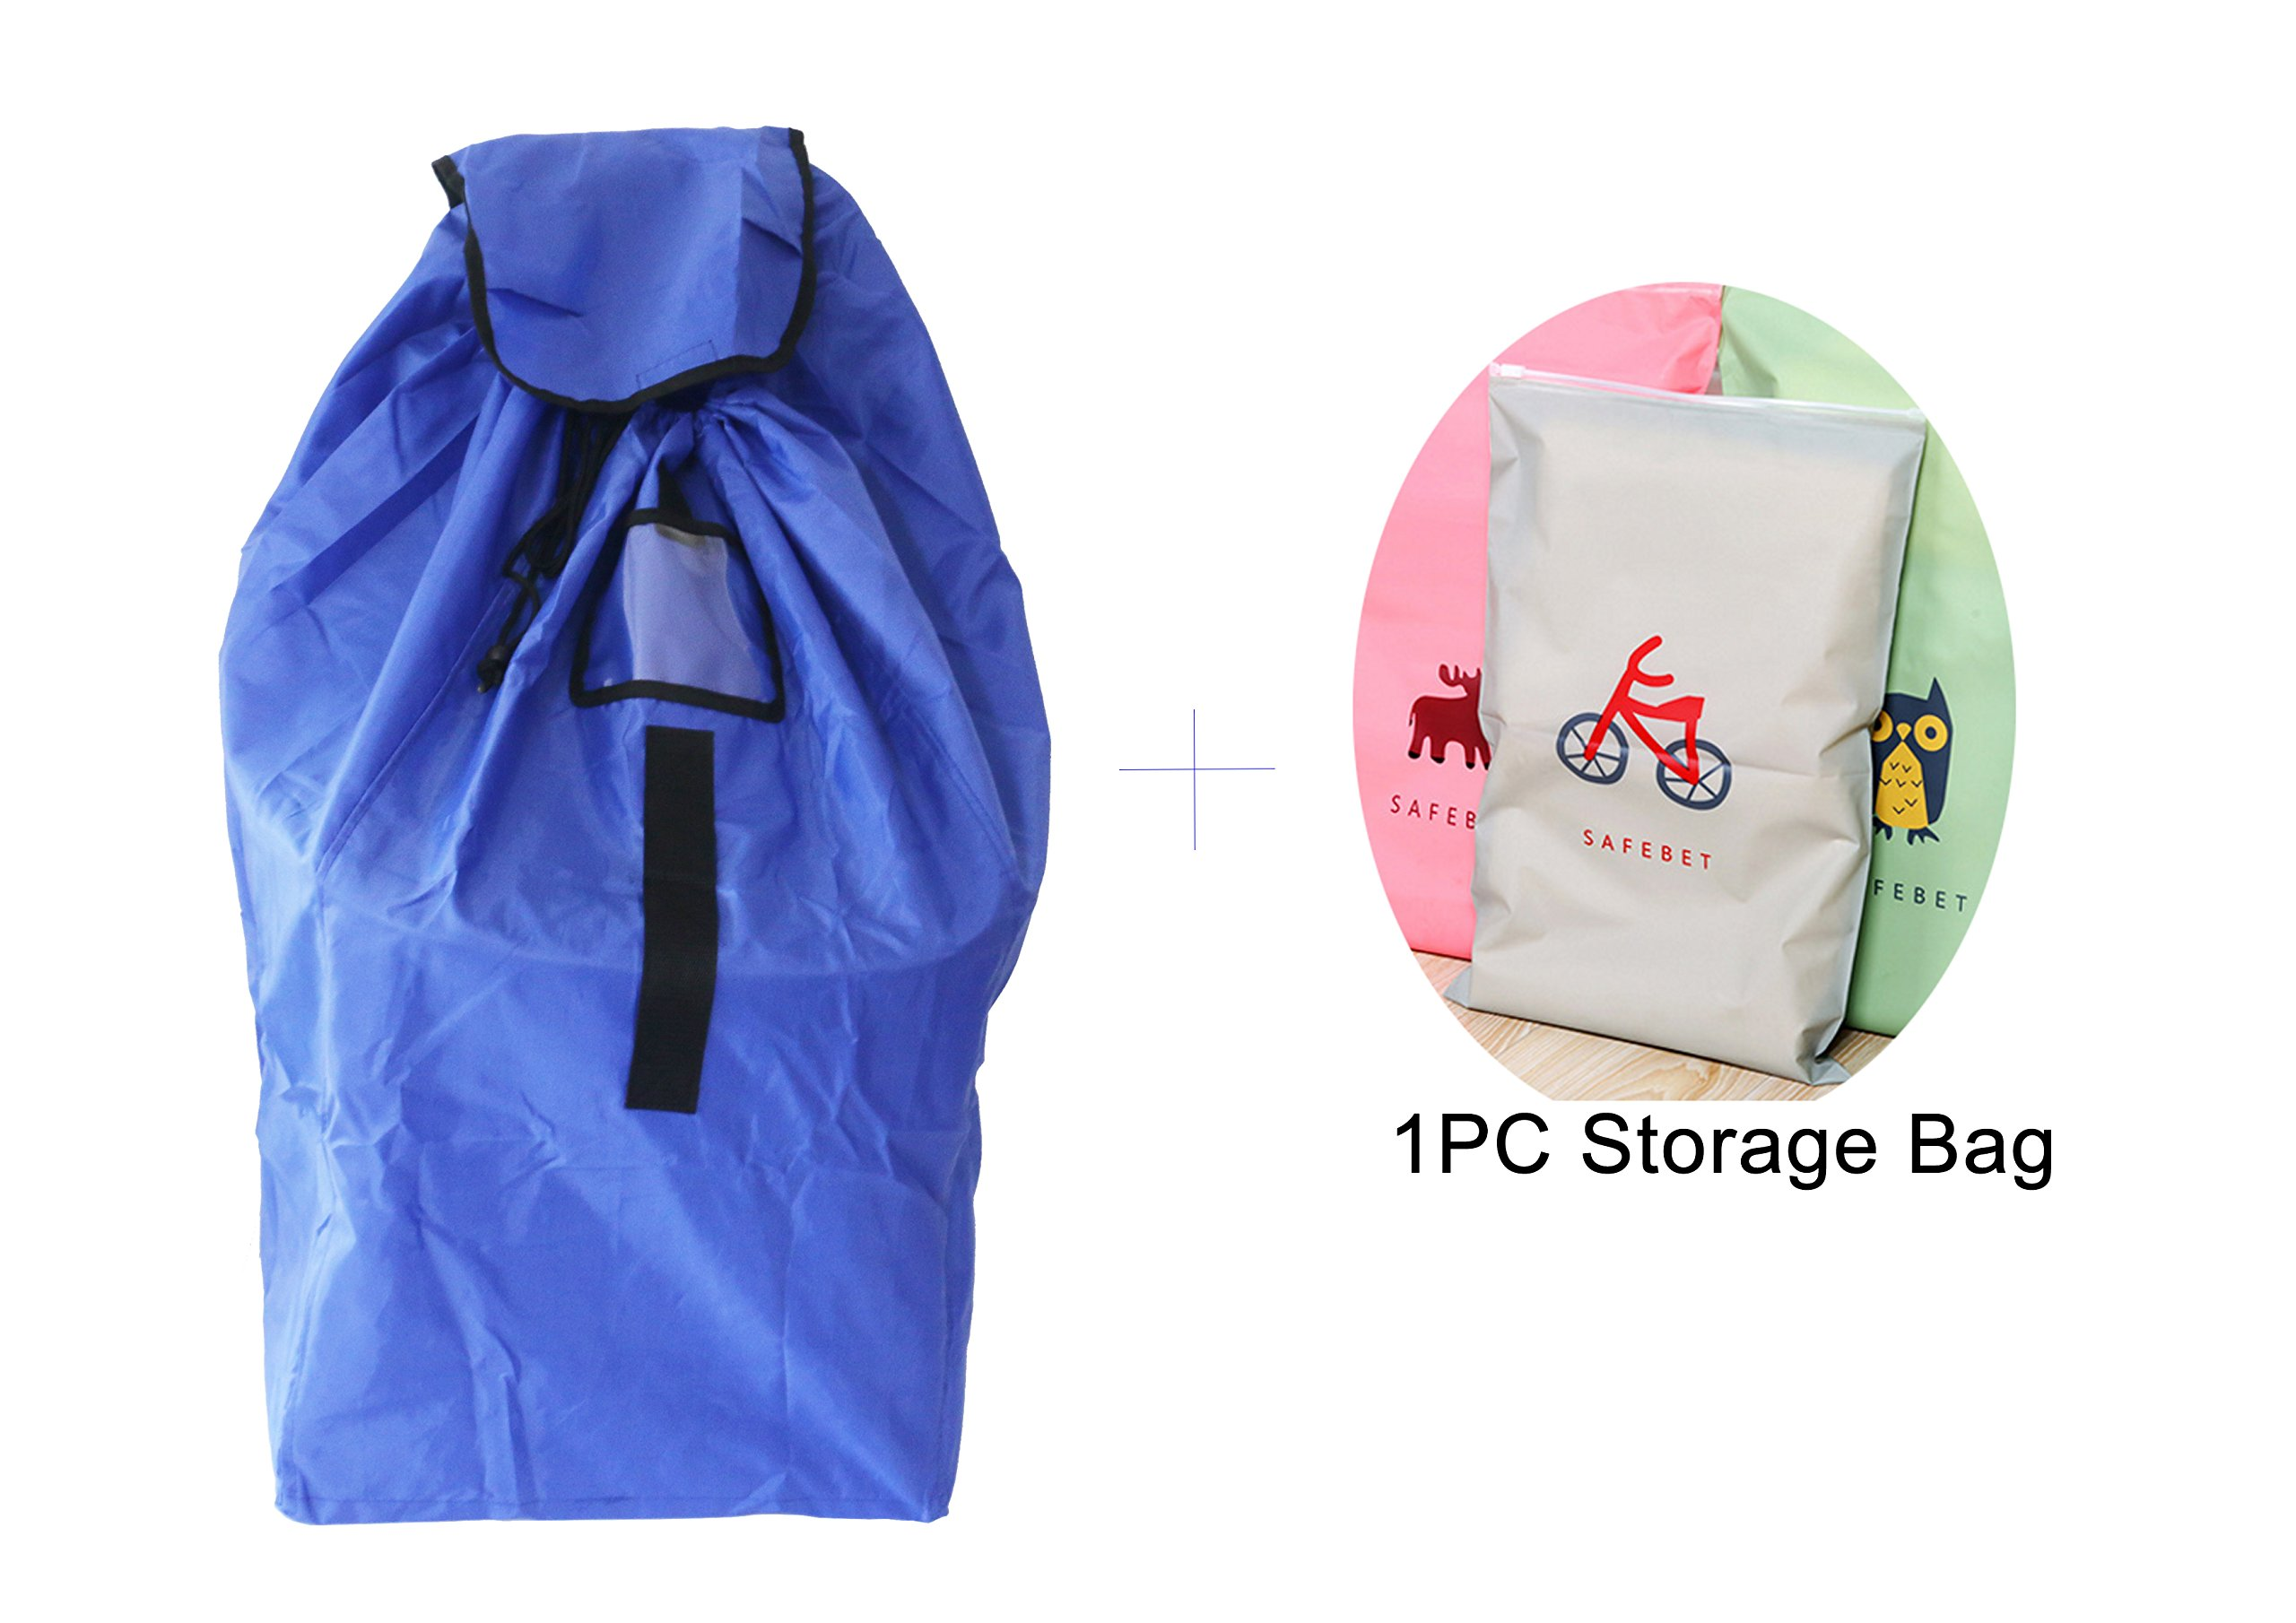 Car Seat Travel Bag, Car Seat Cover, Infant and Baby Carrier Travel Bag, Airport Gate Check Bag with an Extra foldable travel Storage Bag